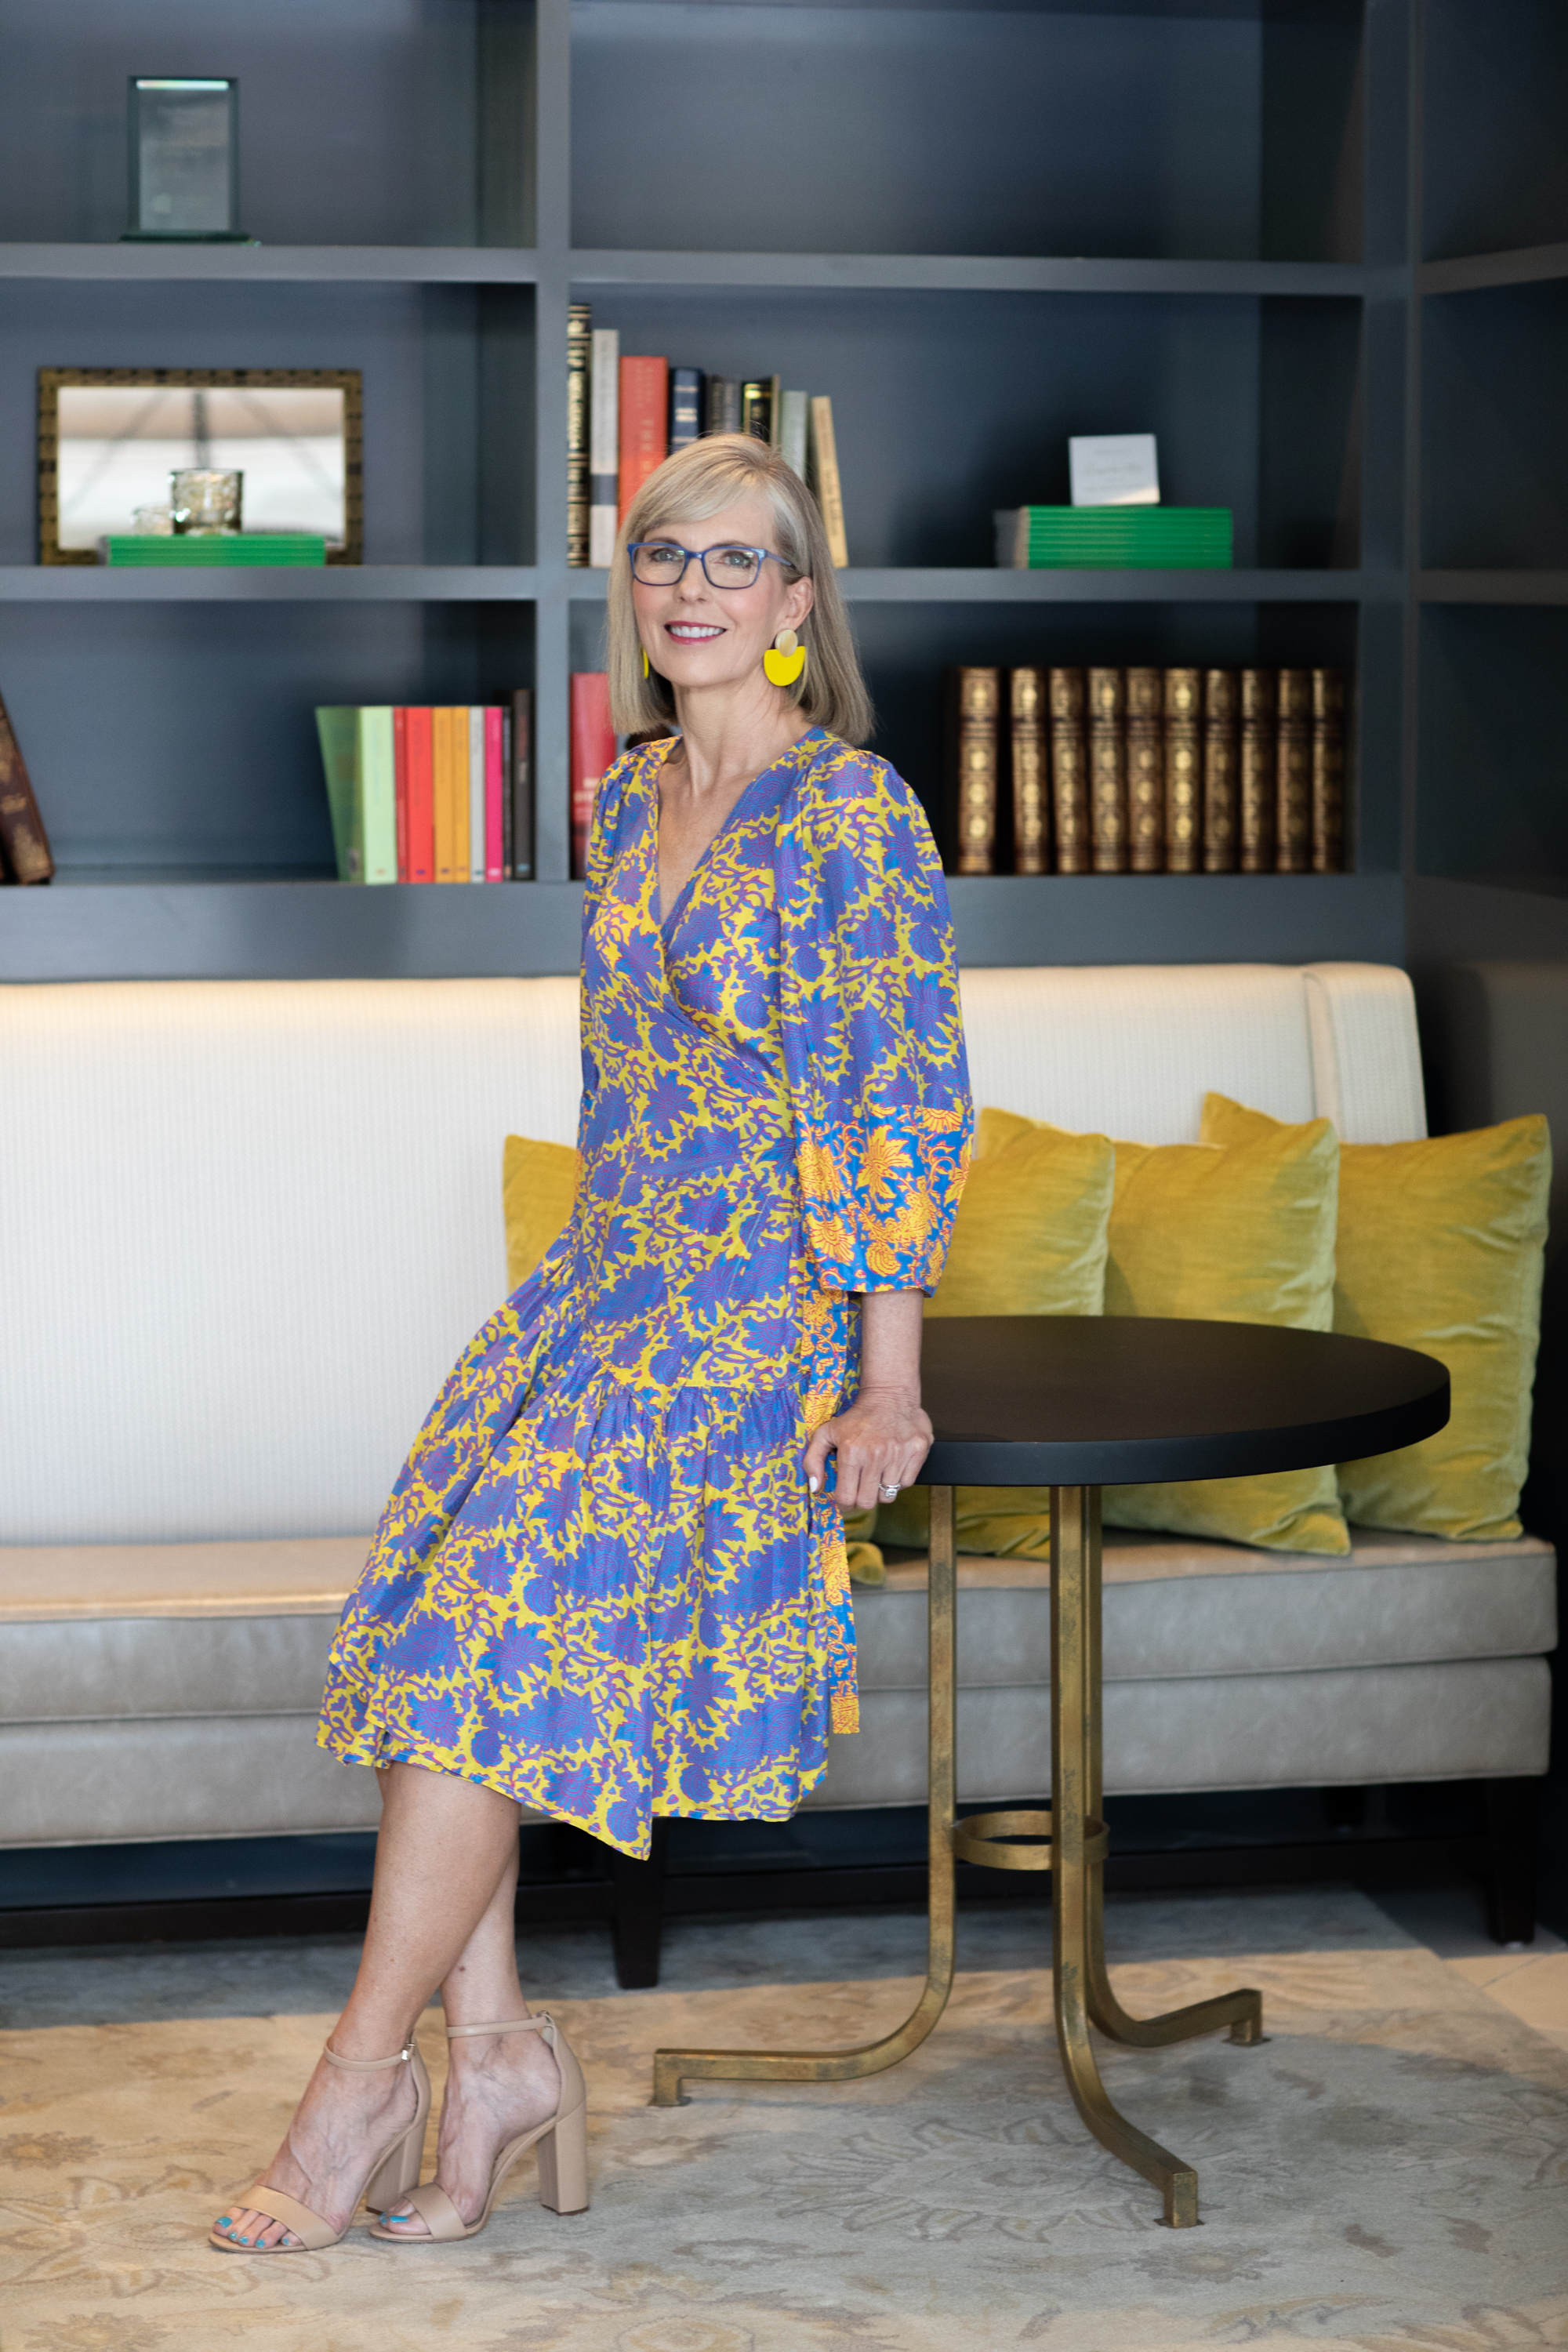 Dress by Apiece Apart and Earrings by Sunshine Tienda